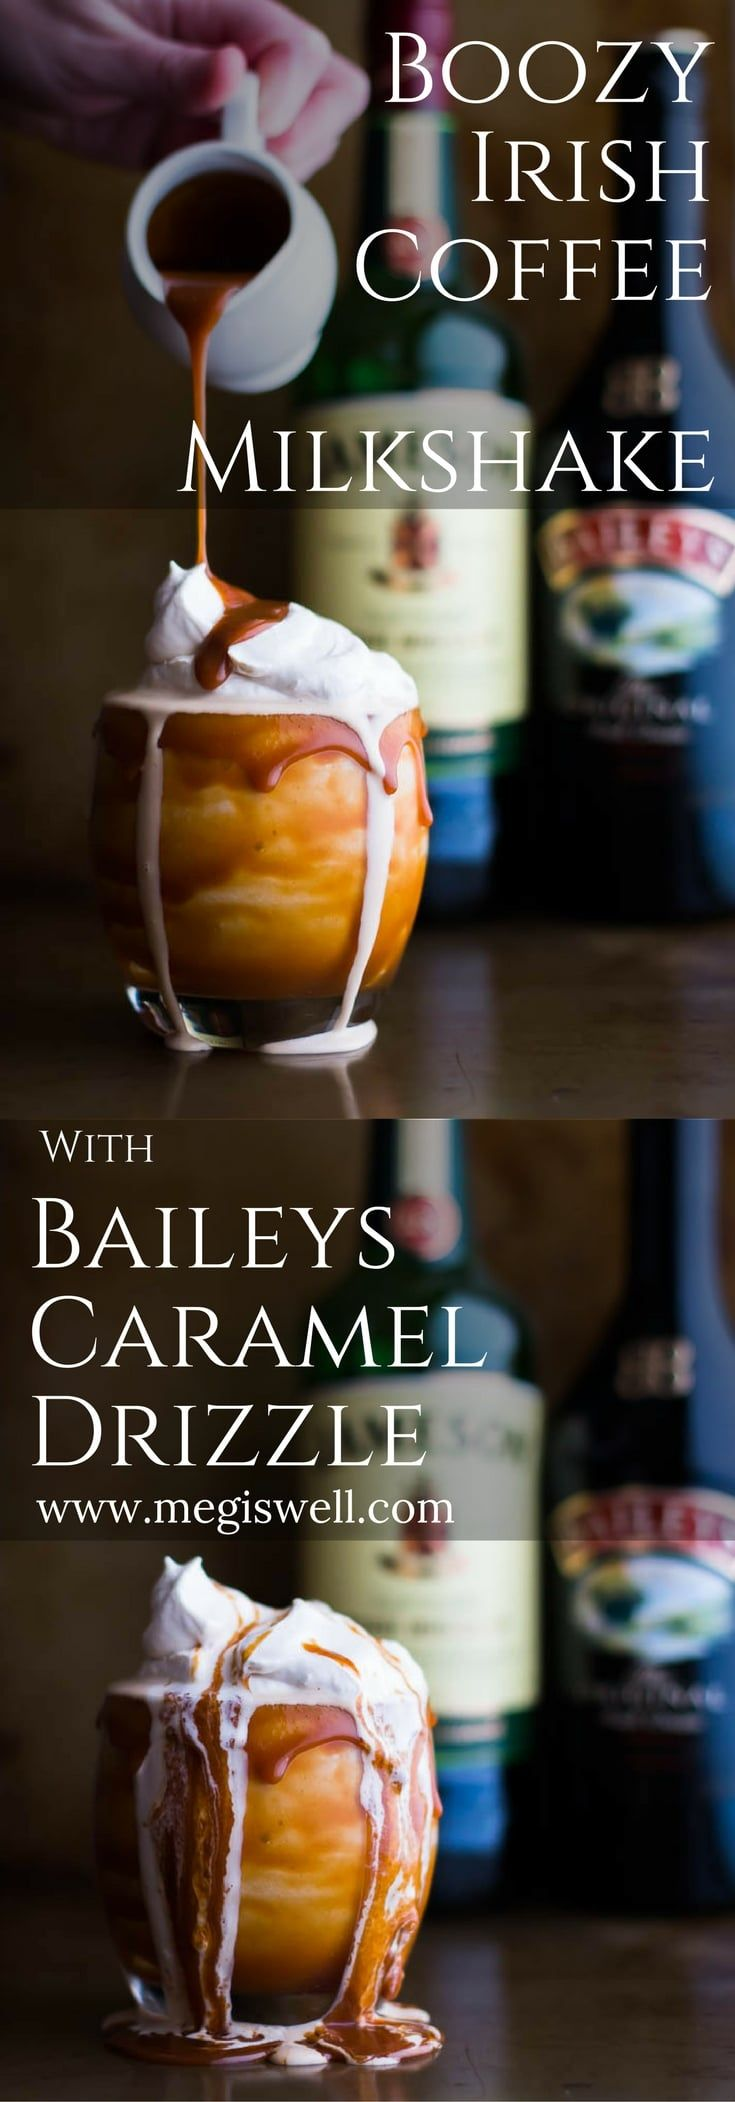 This Boozy Irish Coffee Milkshake with Baileys Caramel Drizzle is based off an Irish Coffee. Vanilla ice cream, espresso, and Jameson whiskey creates that Irish Coffee taste while Baileys caramel sauce and whipped cream enhance the flavor and increase the